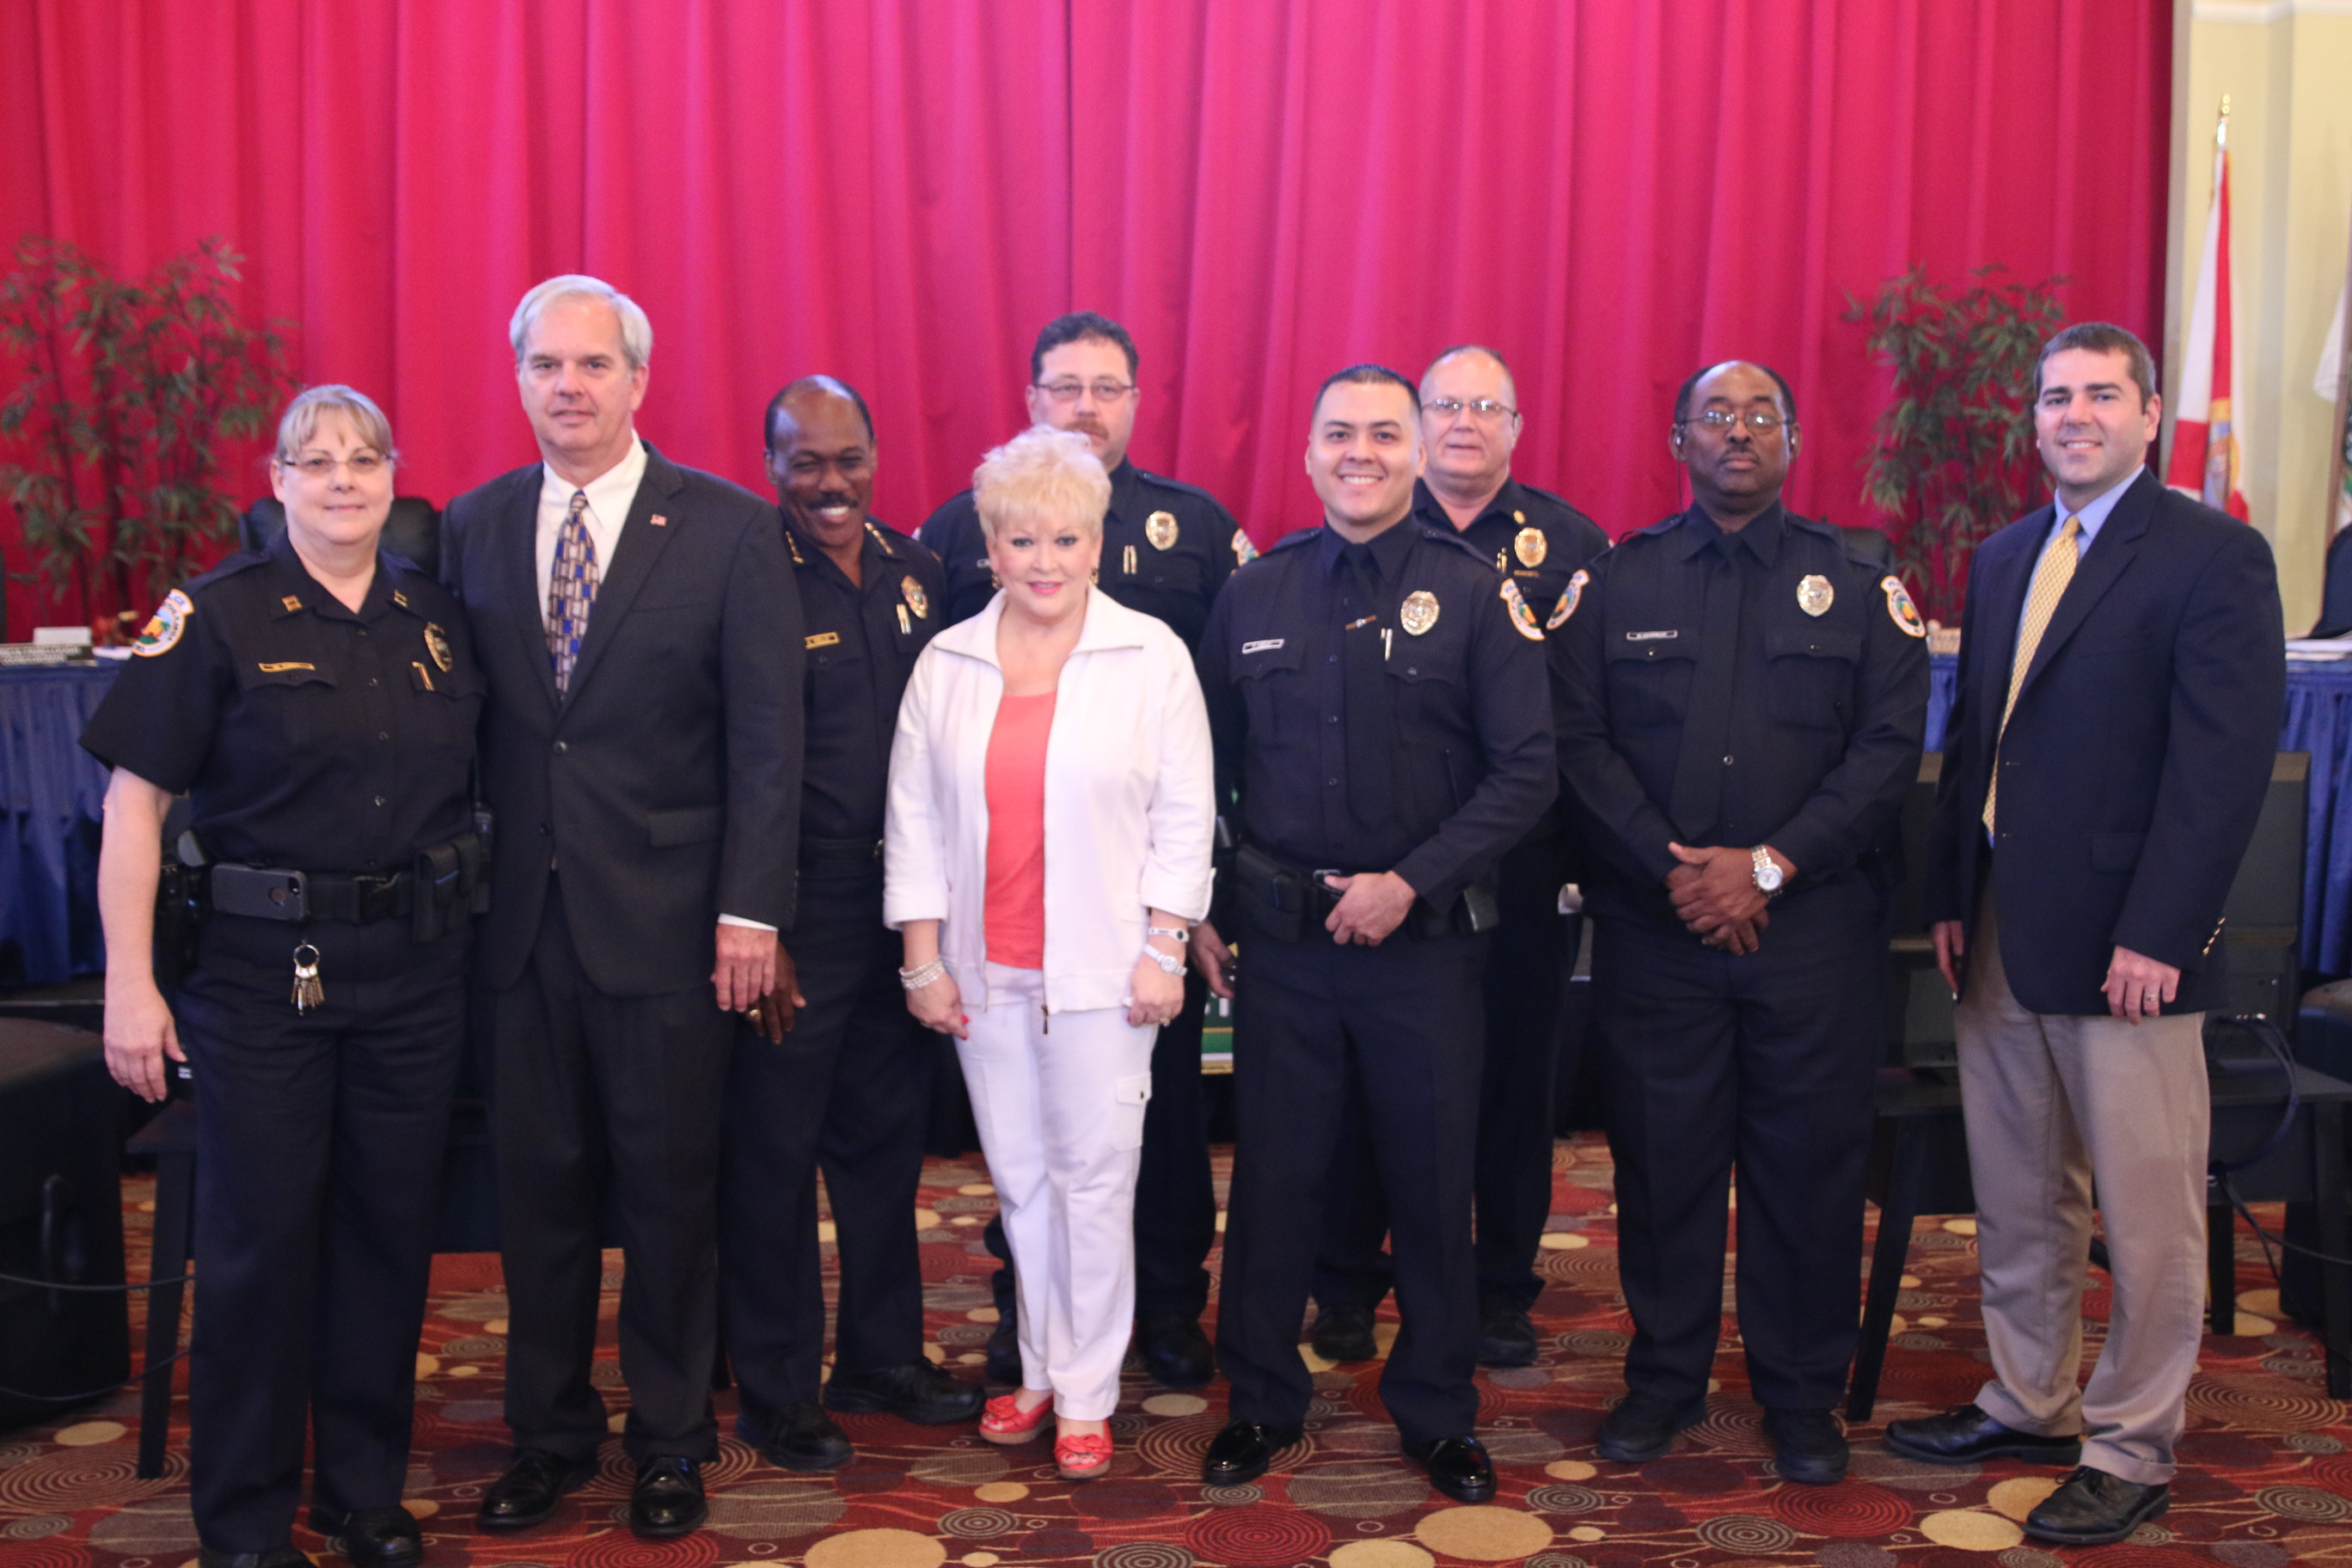 Homestead Police Department Promotes Two Reserve Sergeants, Welcomes One New Officer to the Force